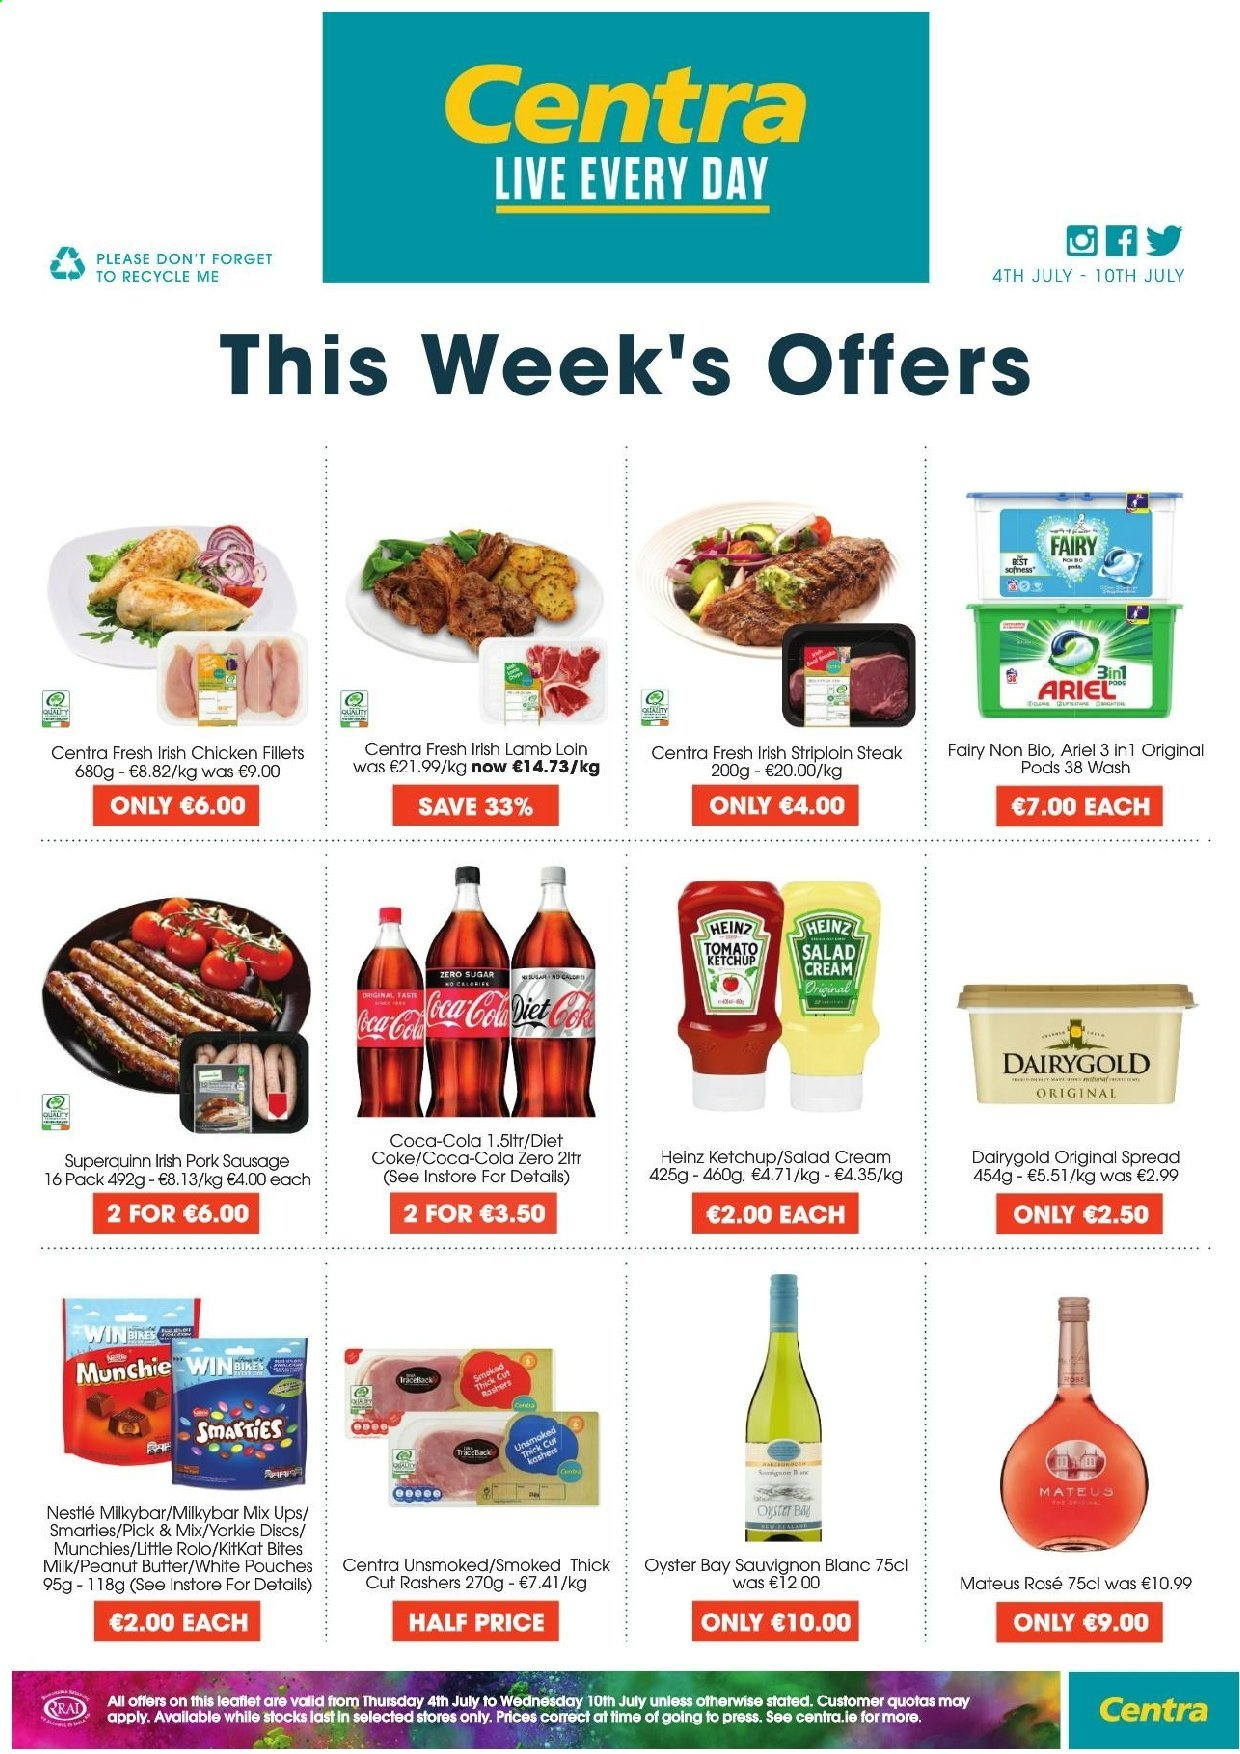 Centra offer  - 4.7.2019 - 10.7.2019 - Sales products - bin, butter, coca-cola, cream, lamb loin, lamb meat, nestlé, sausage, heinz, ketchup, pork meat, pork sausage, chicken, peanut butter, peanuts, coca-cola light, steak, salad, ariel, smarties. Page 1.